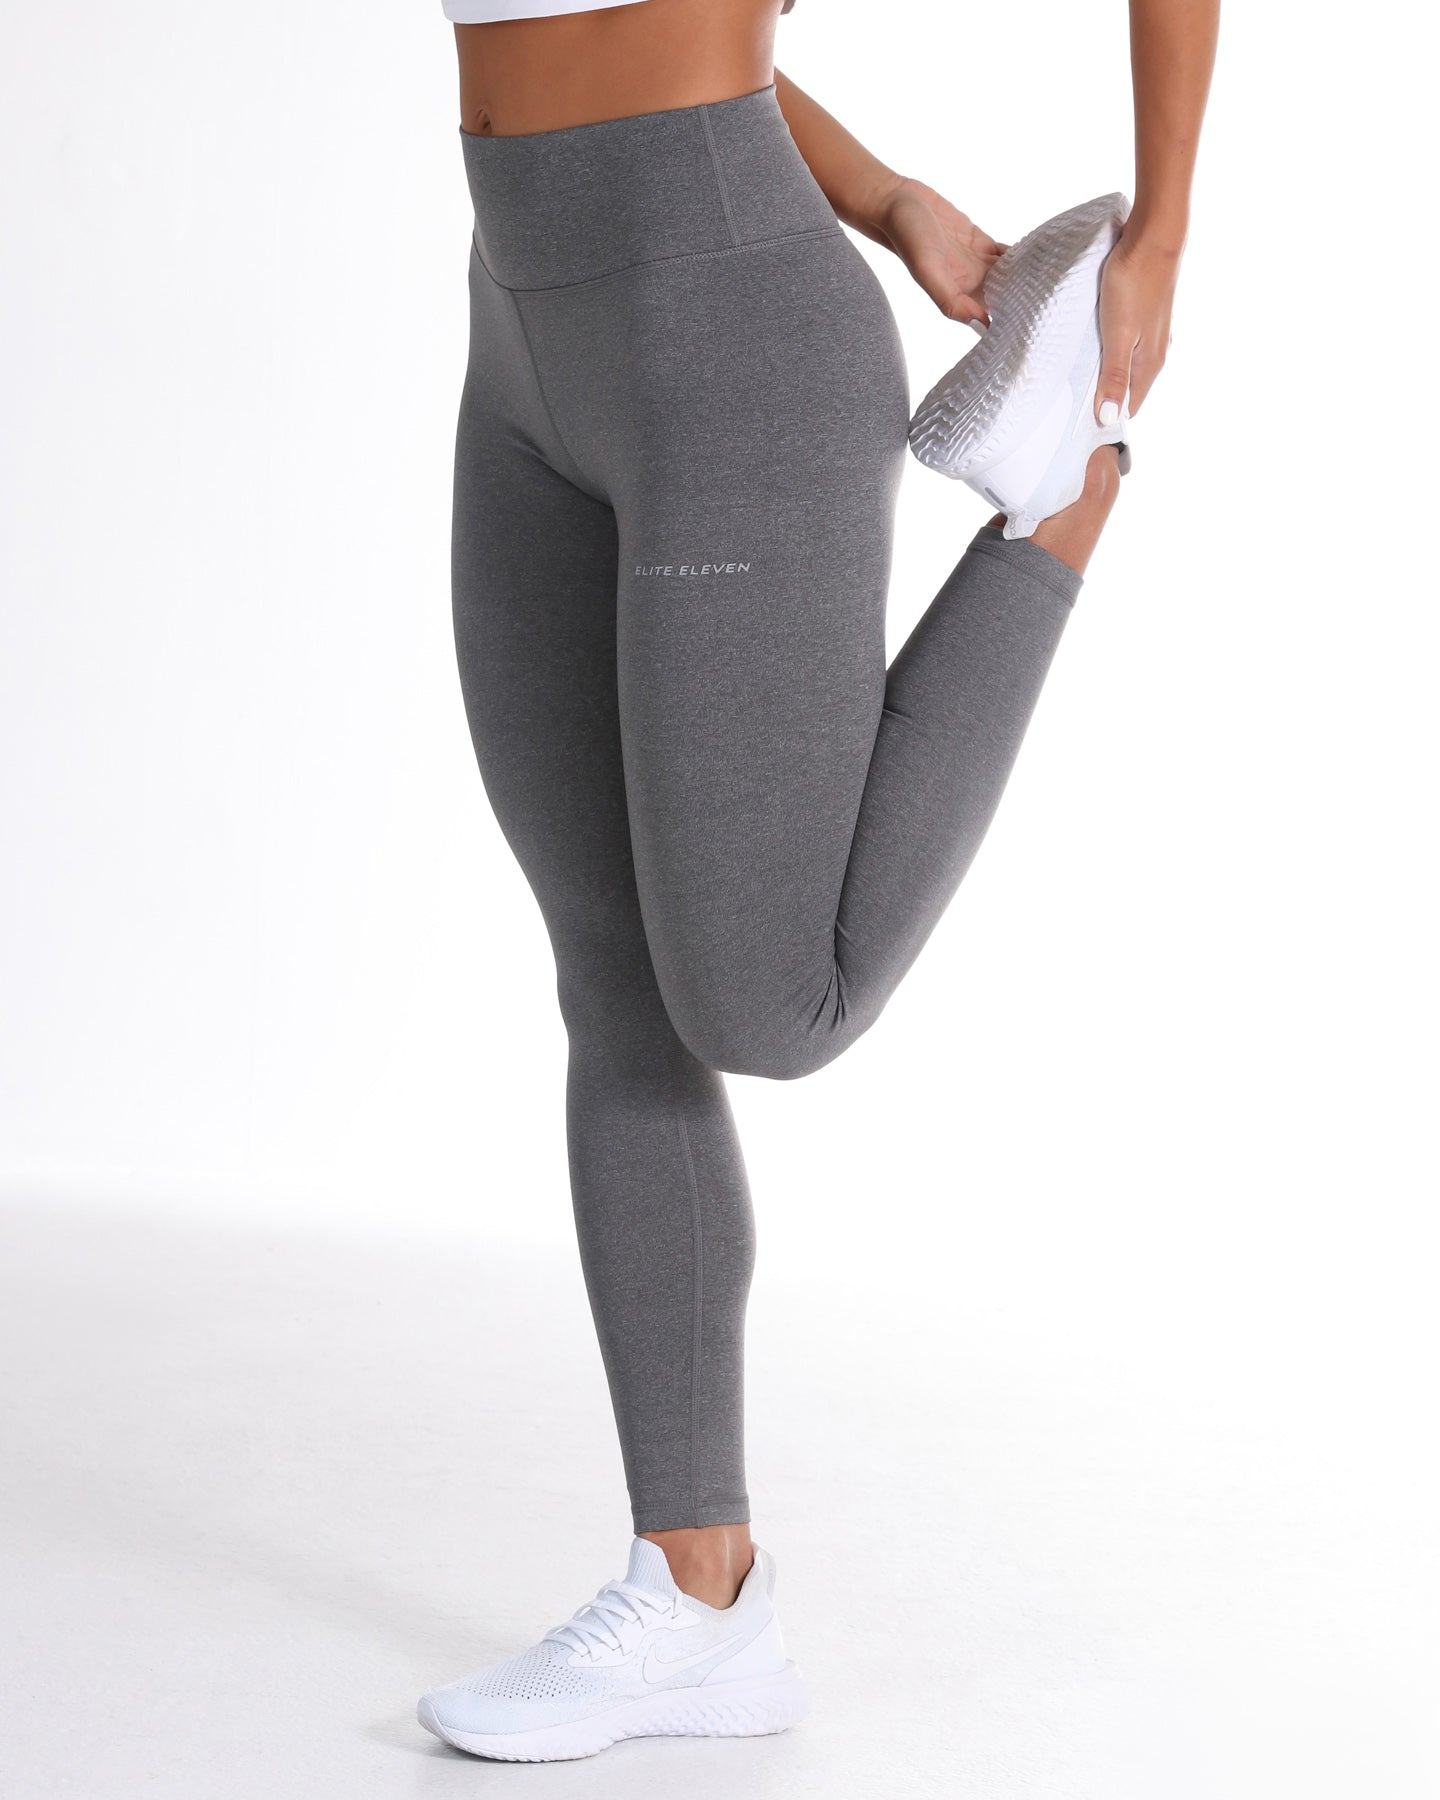 533bb53aae0443 EE Touch Tights - Graphite - Elite Eleven